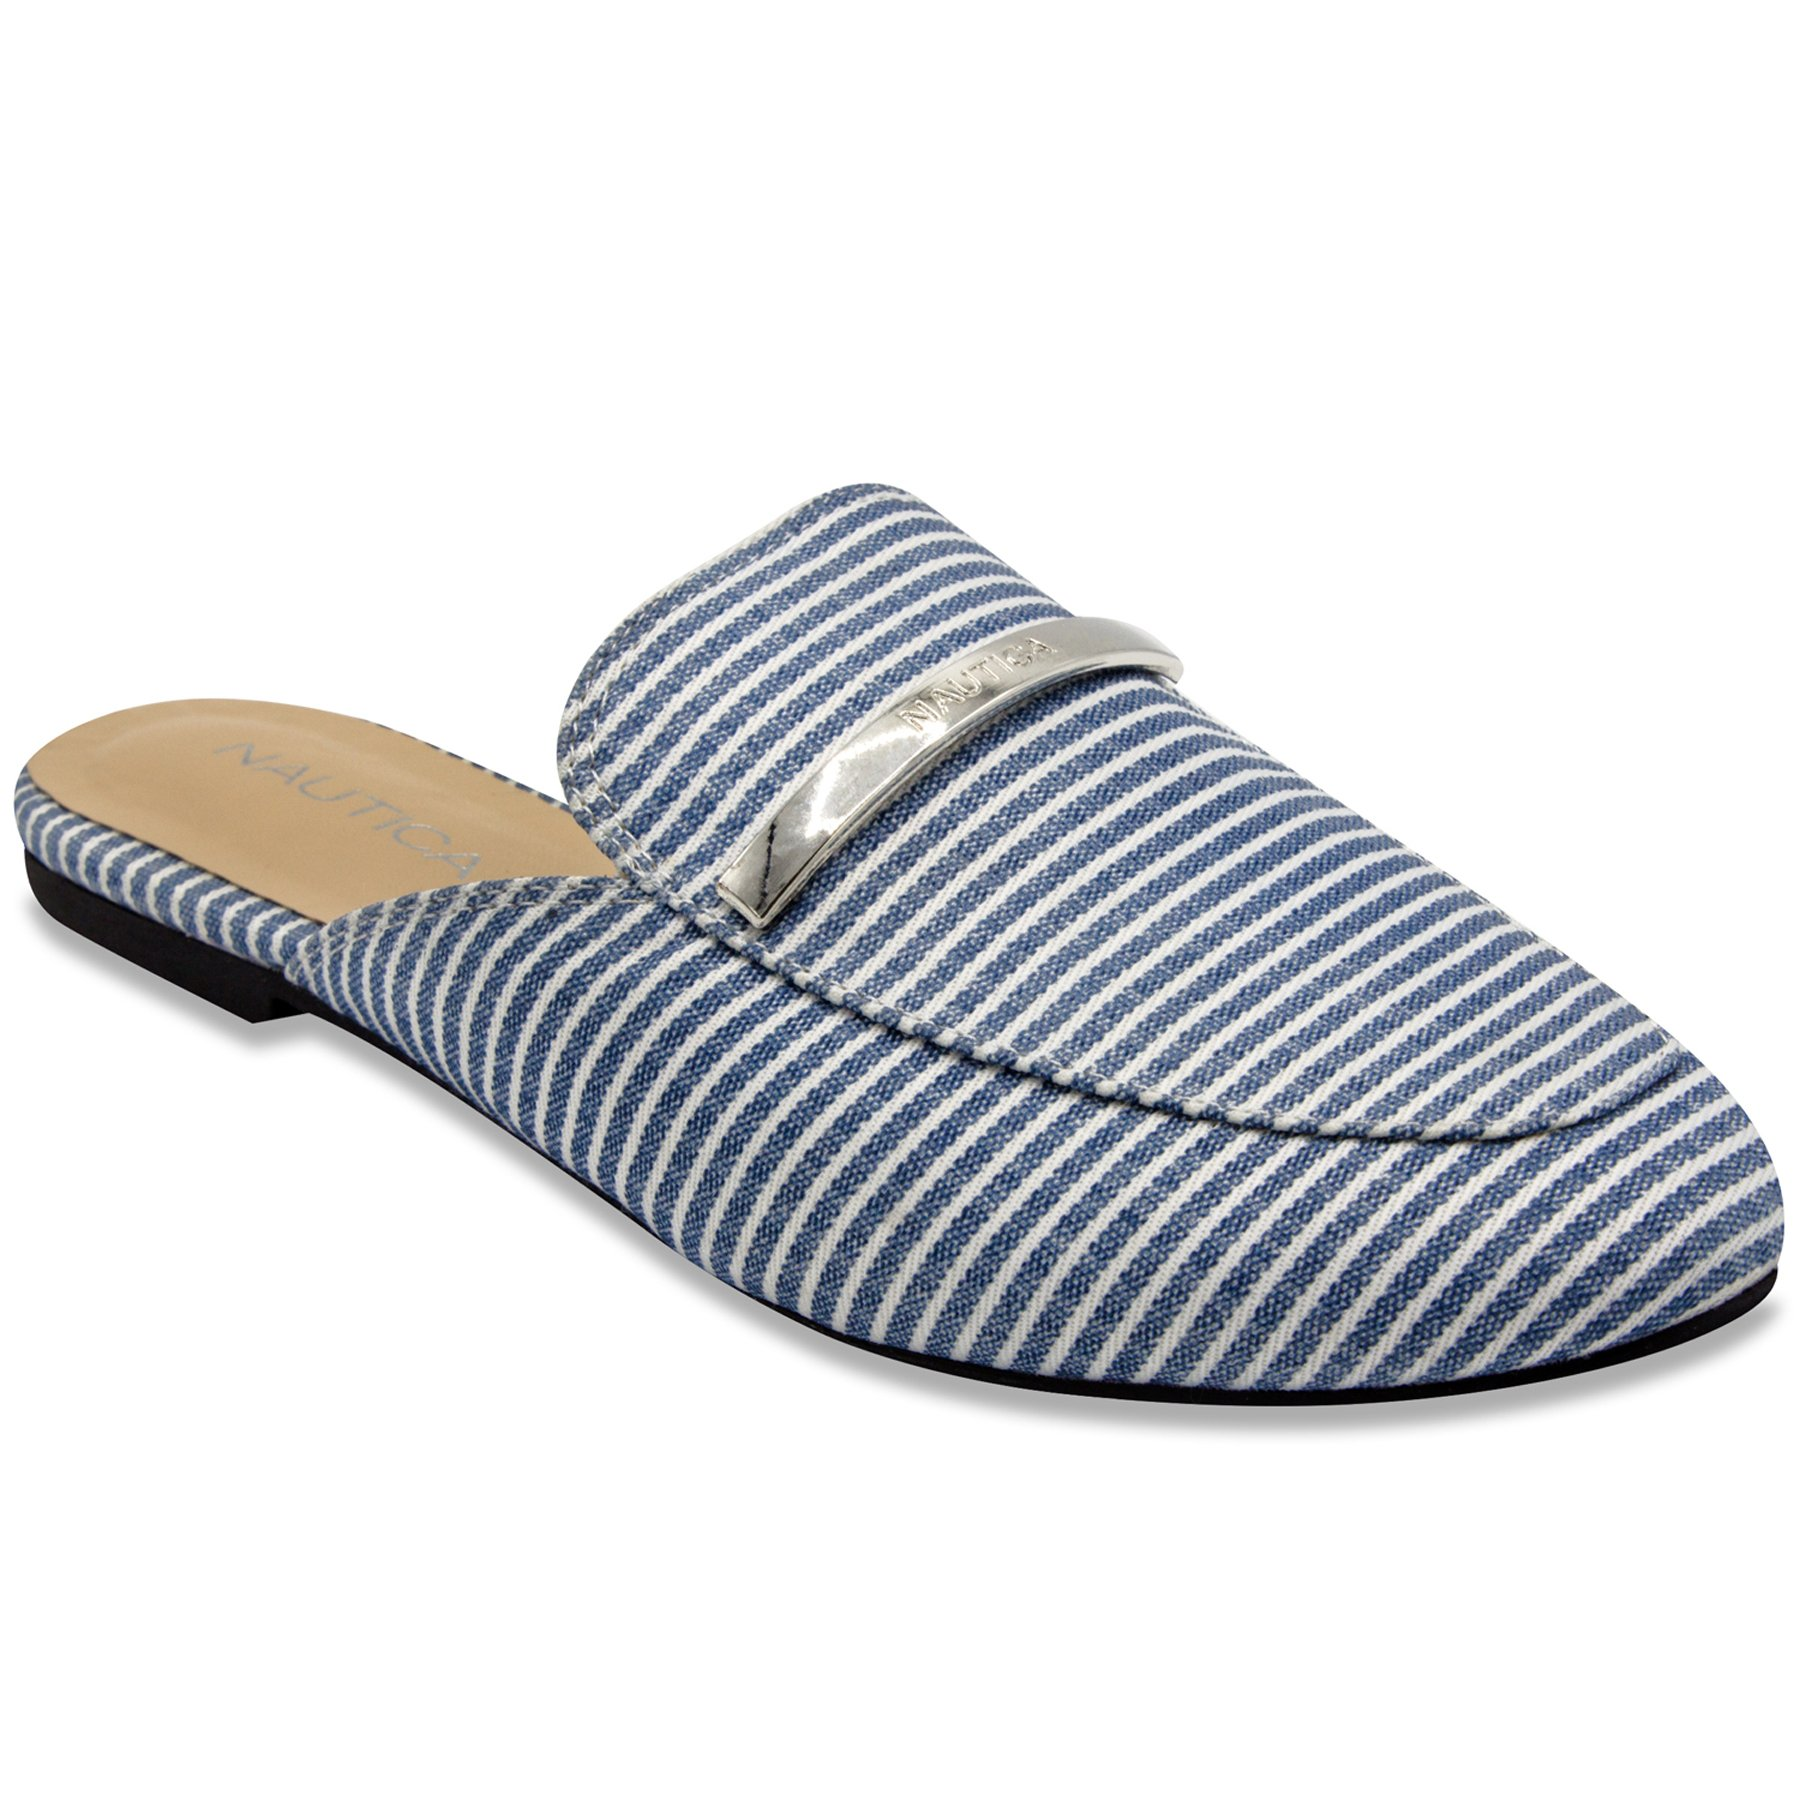 Nautica labella Mule Slide Backless Slip On Loafers-Blue -8